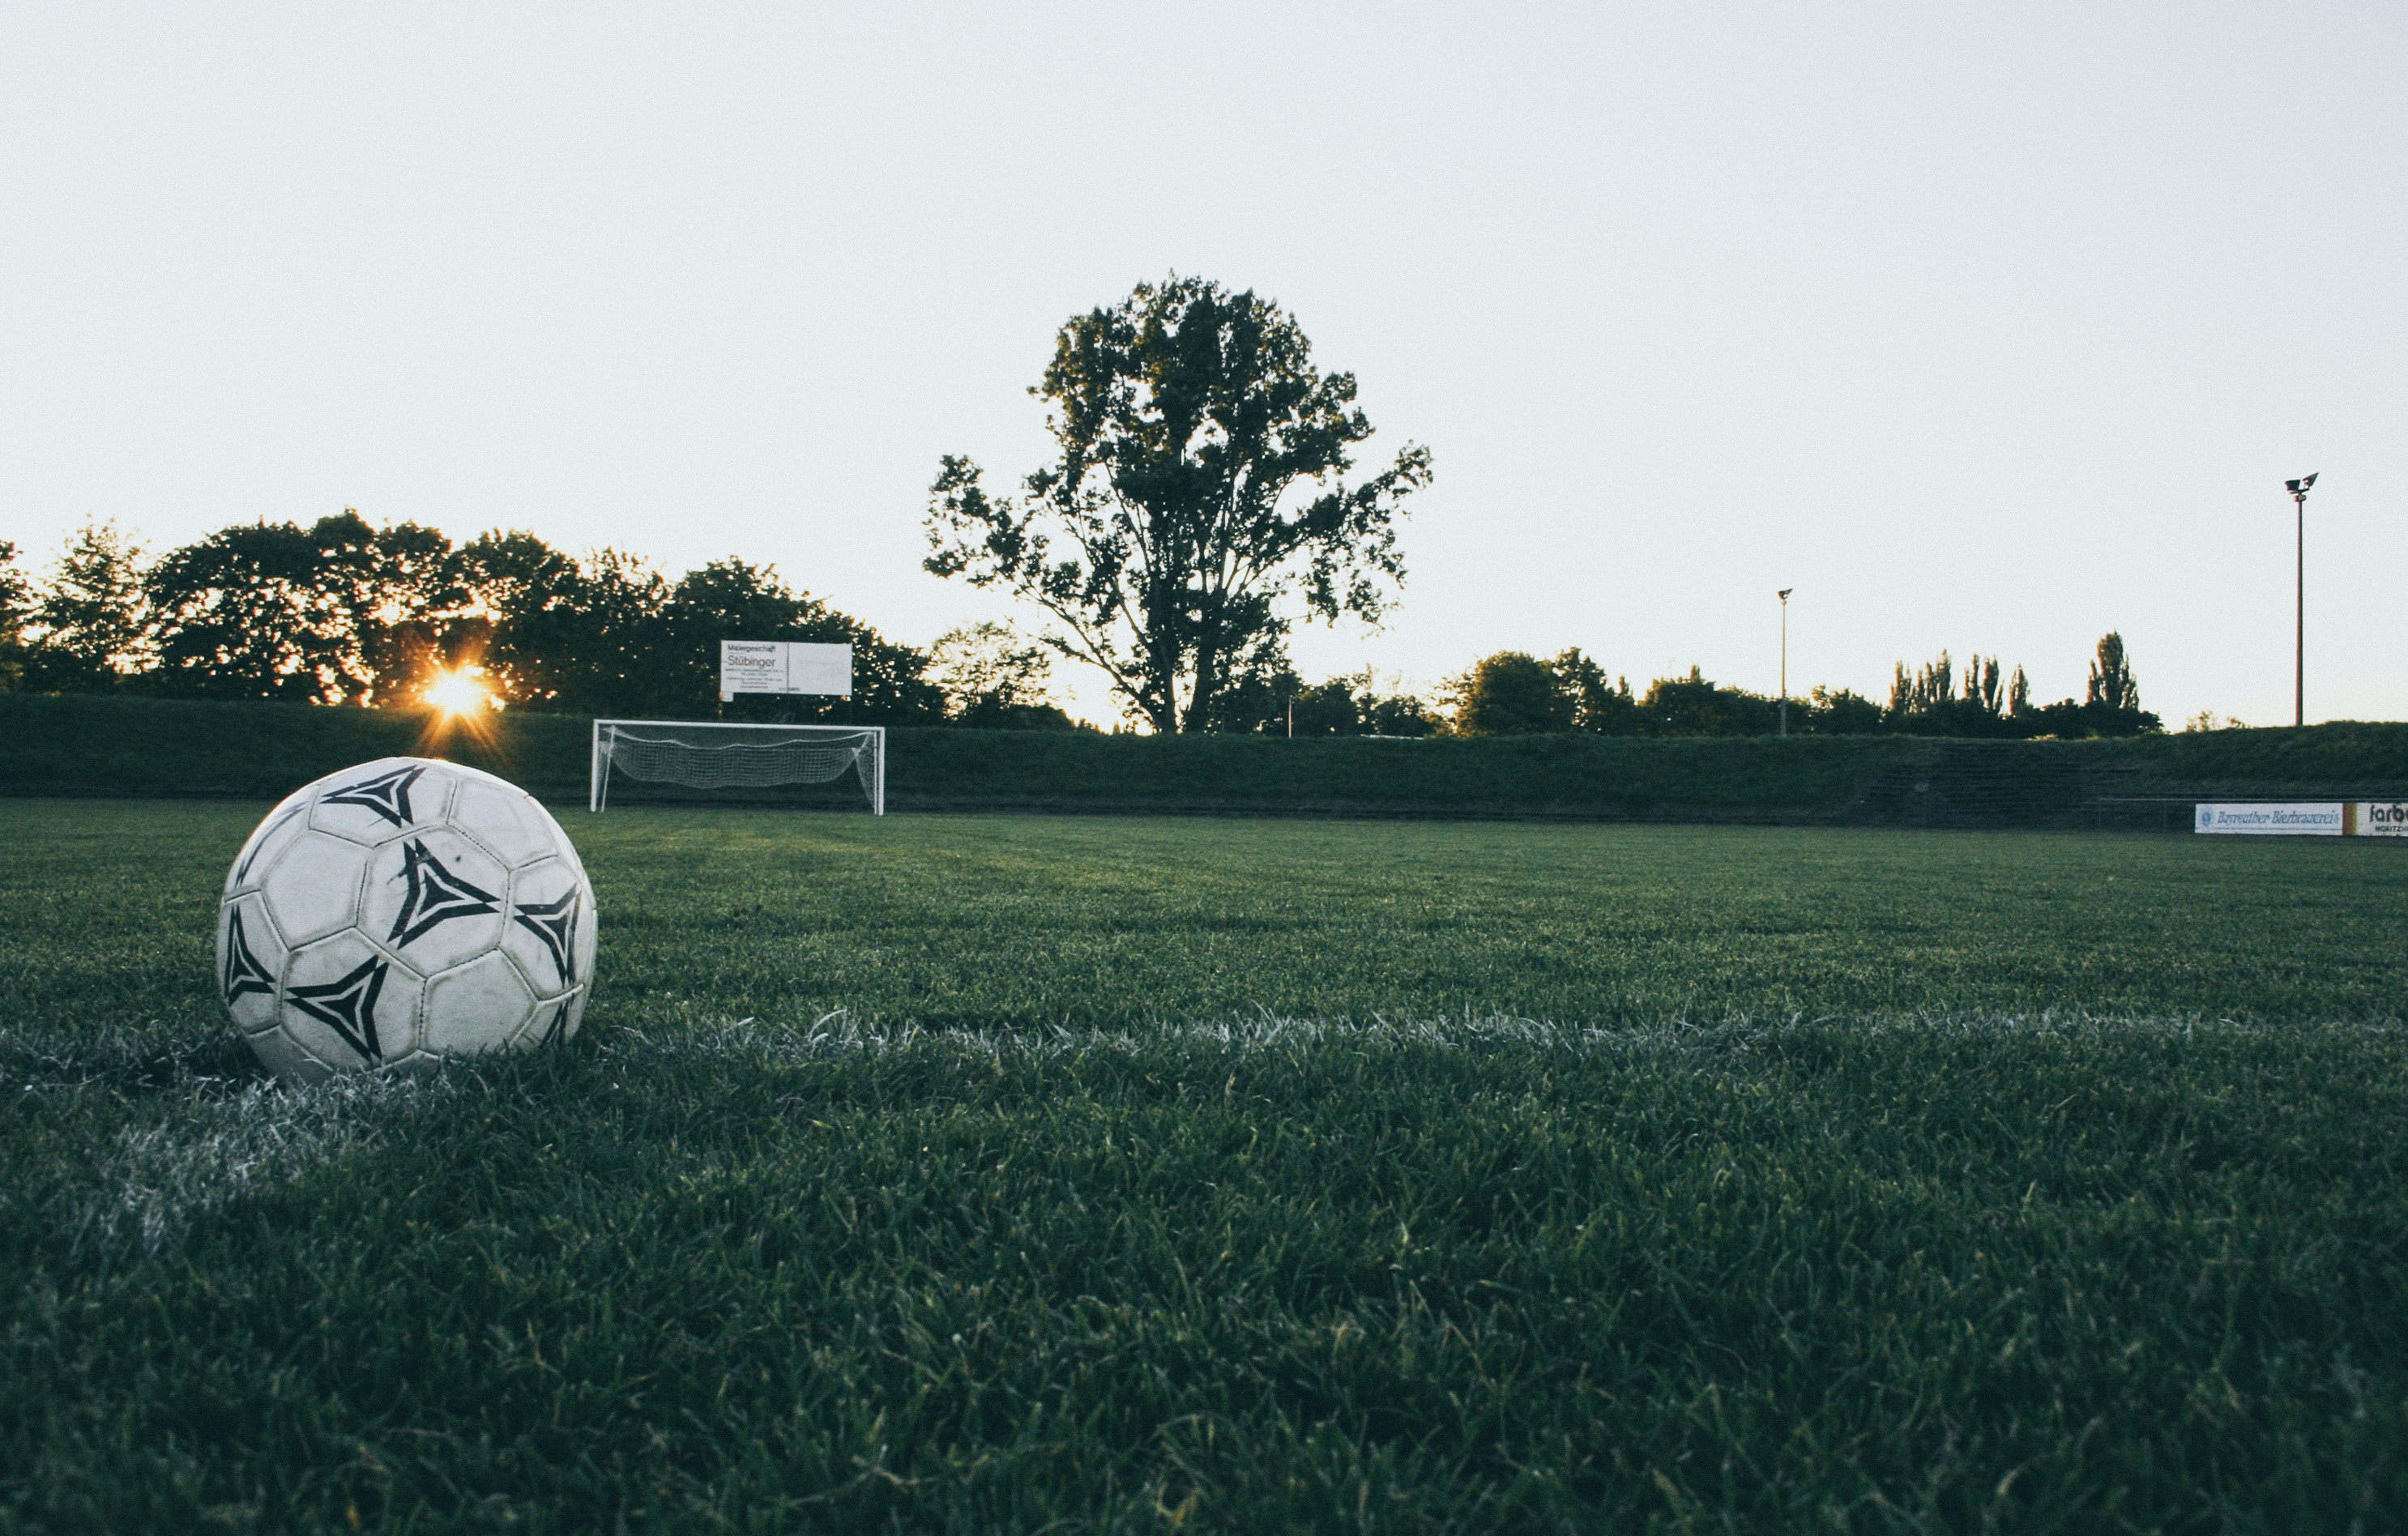 Black and White Soccer Ball on Green Grass Land during Daytime, Soccer photos, Sunrise, Sunset, Soccer images, HQ Photo